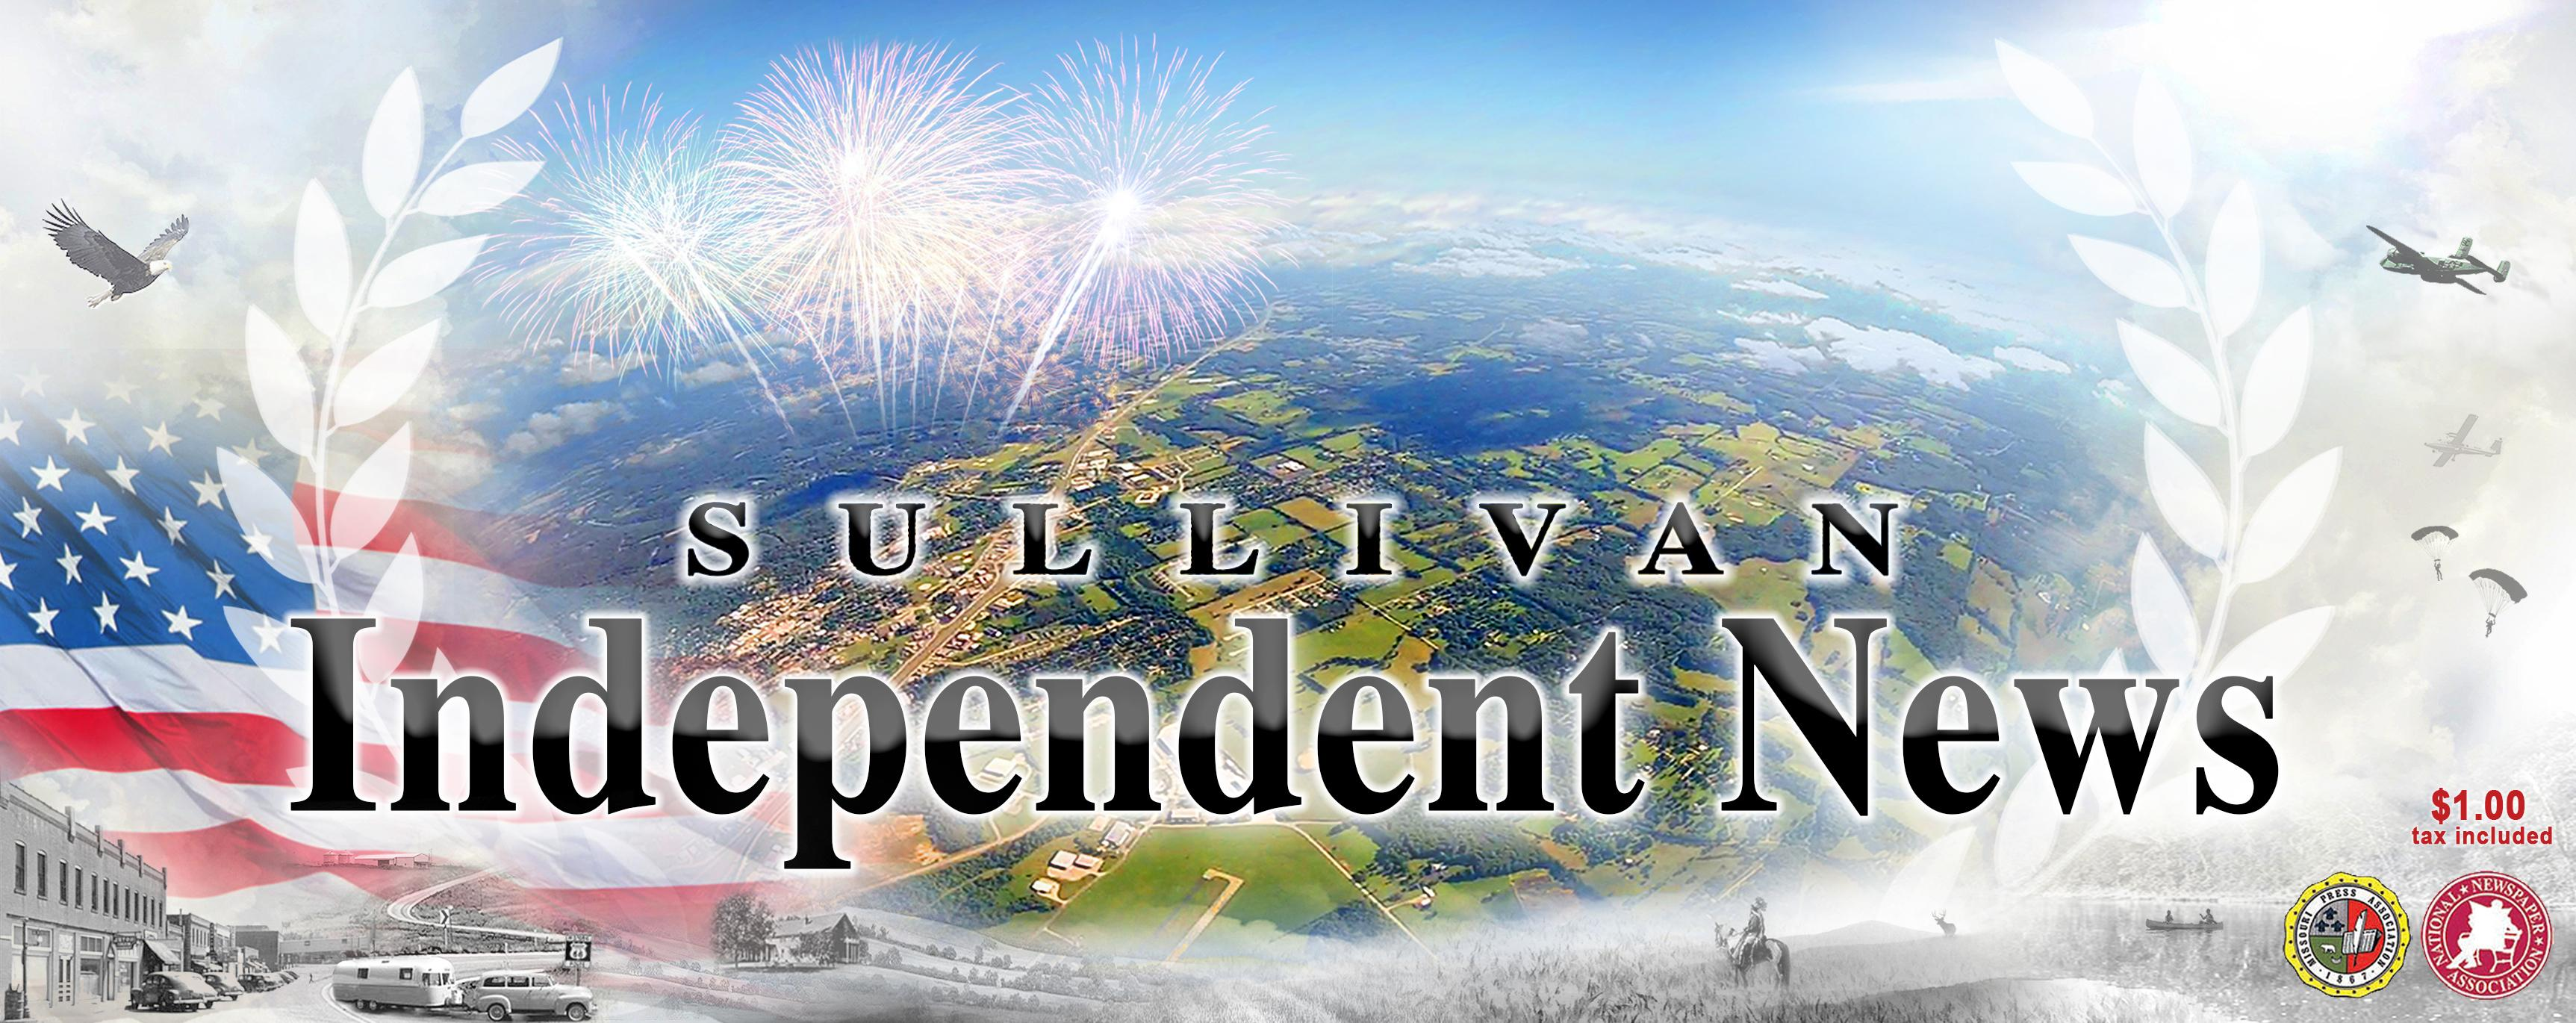 Sullivan Independent News Logo